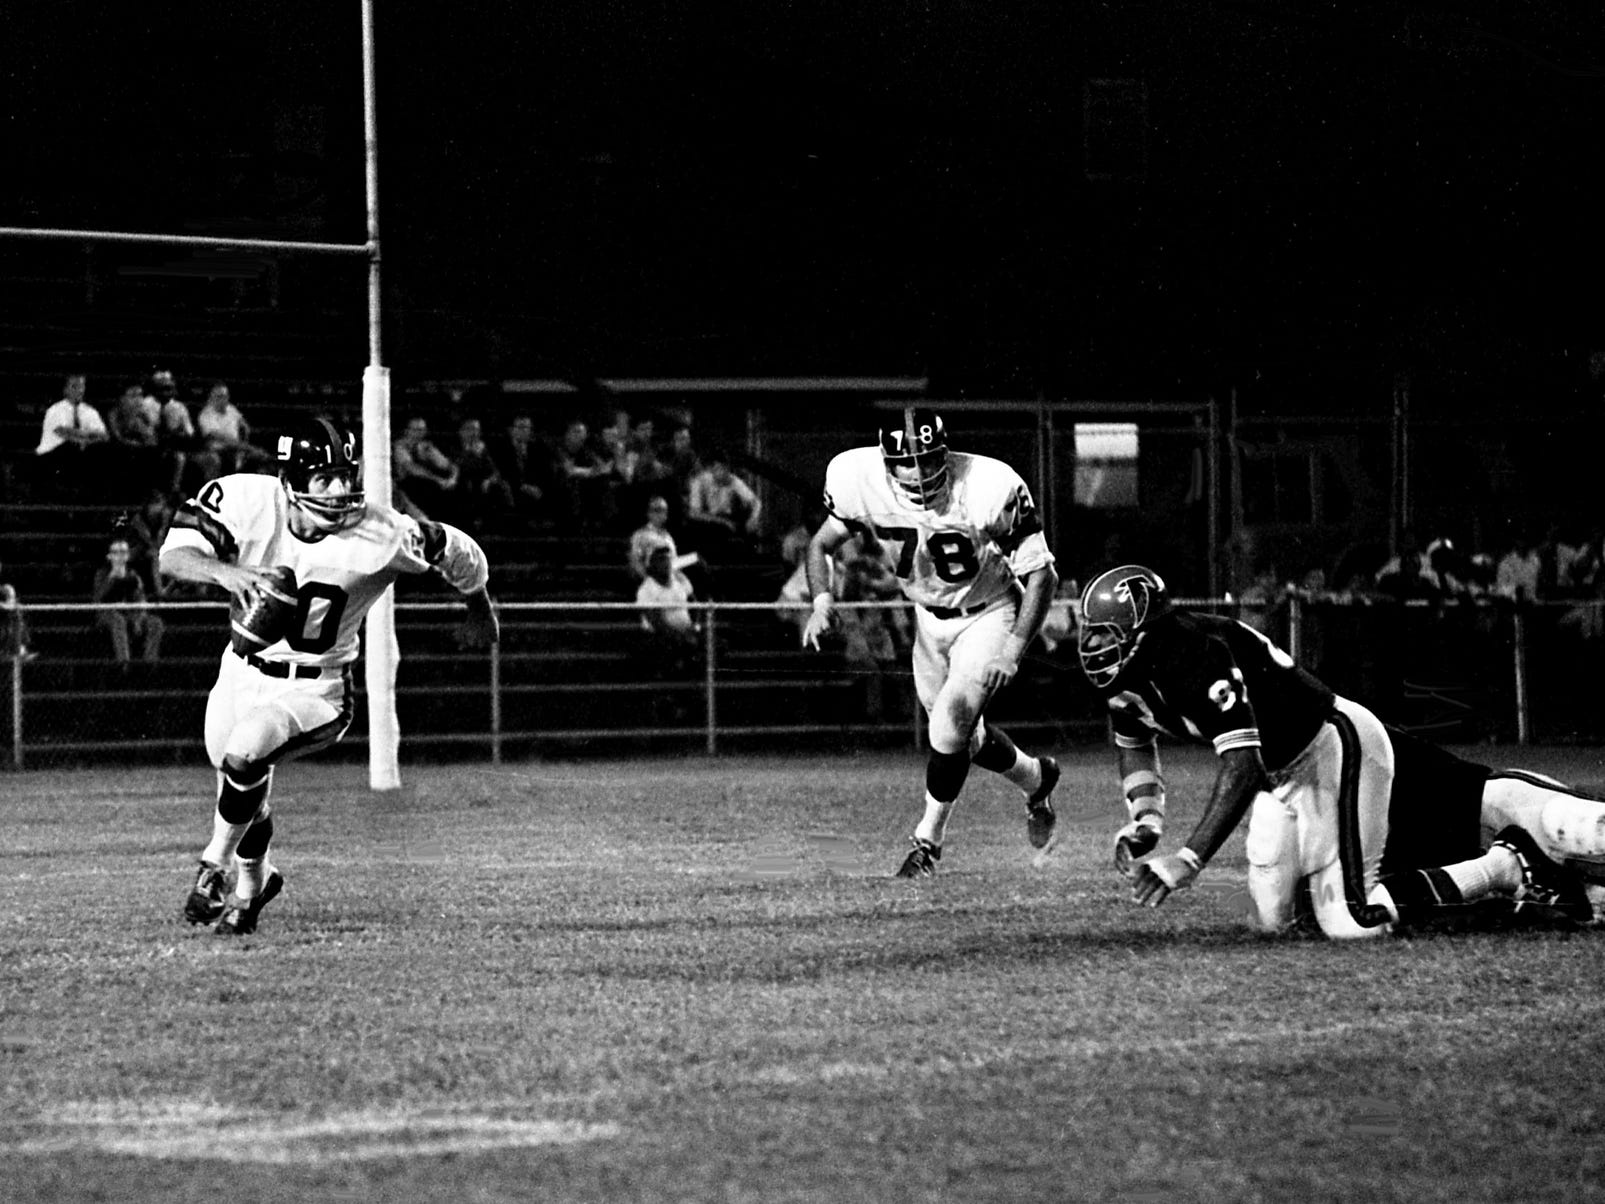 Atlanta Falcons rookie Claude Humphrey (87), right, can only look on as New York Giants quarterback Fran Tarkenton (10) starts to head up the field as the two teams battled at Vanderbilt's Dudley Field during a preseason matchup Aug. 17, 1968. The Giants came out on top 17-13 before a disappointing size crowd of 14,455.